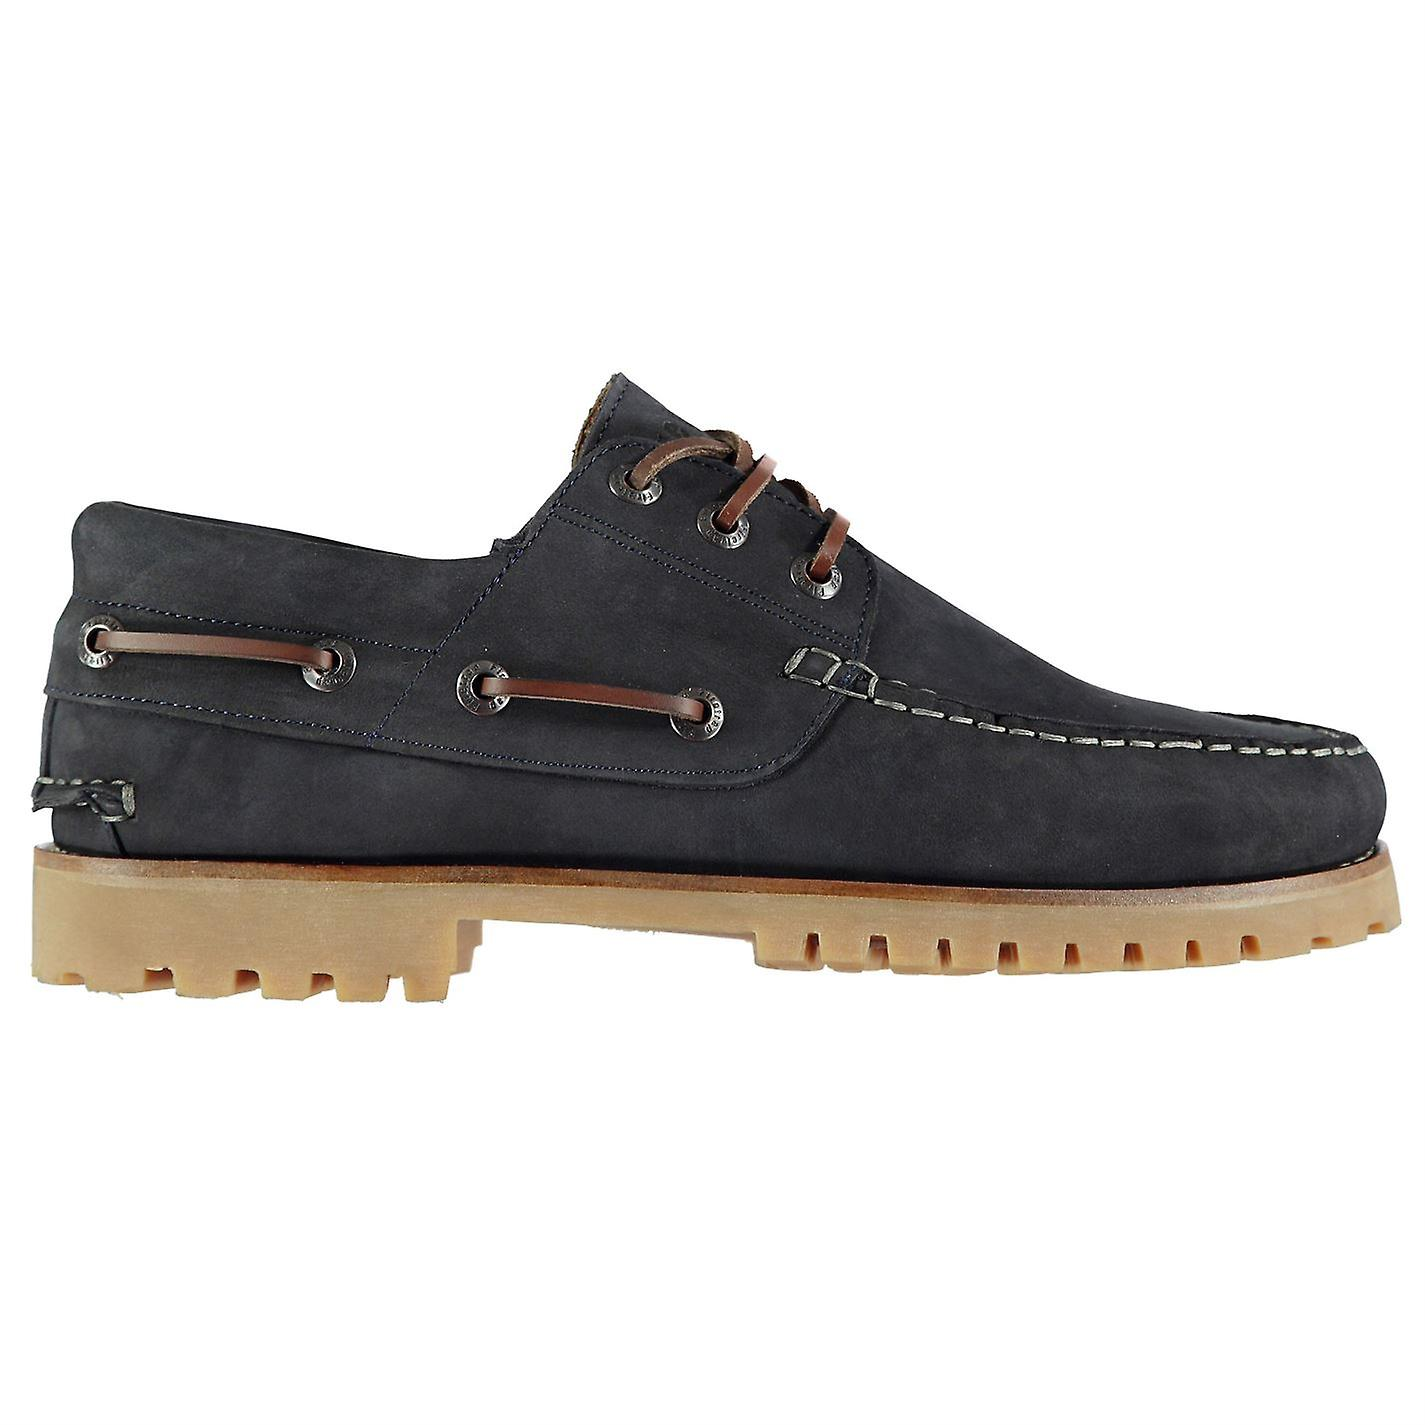 Firetrap Mens Jose Boat chaussures Lace Up Gripped Sole Fashion Stitched Detailing